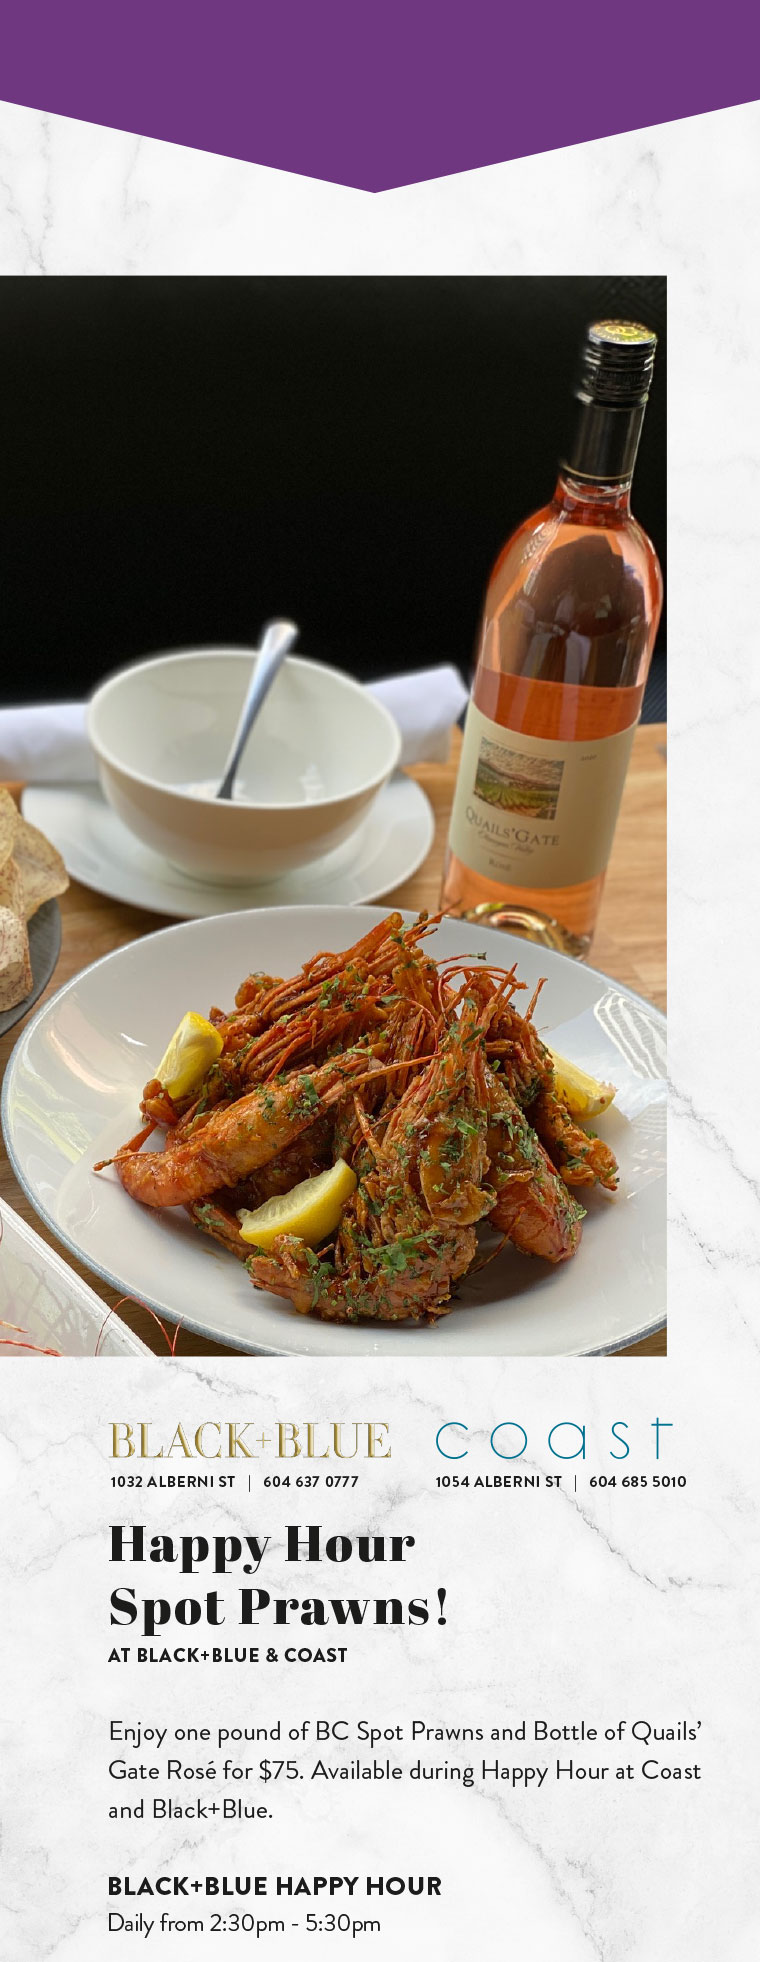 Happy Hour  Spot Prawns! AT BLACK+BLUE & COAST   Enjoy one pound of BC Spot Prawns and Bottle of Quails' Gate Rosé for $75. Available during Happy Hour at Coast and Black+Blue.